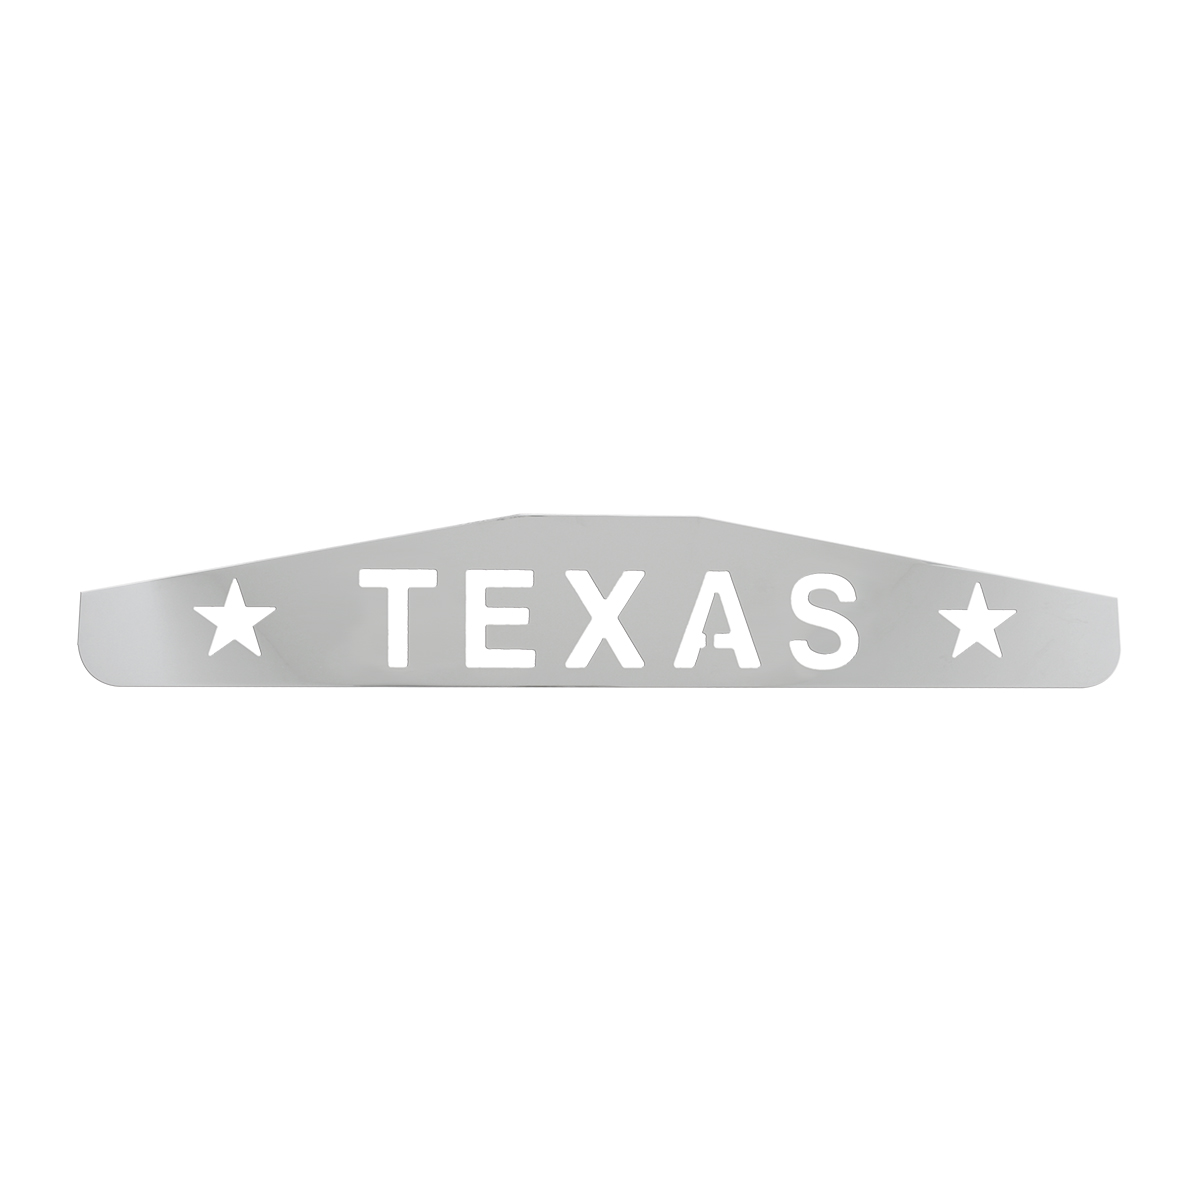 """Bottom Maud Flap Plate with """"Texas with Stars"""" Script"""